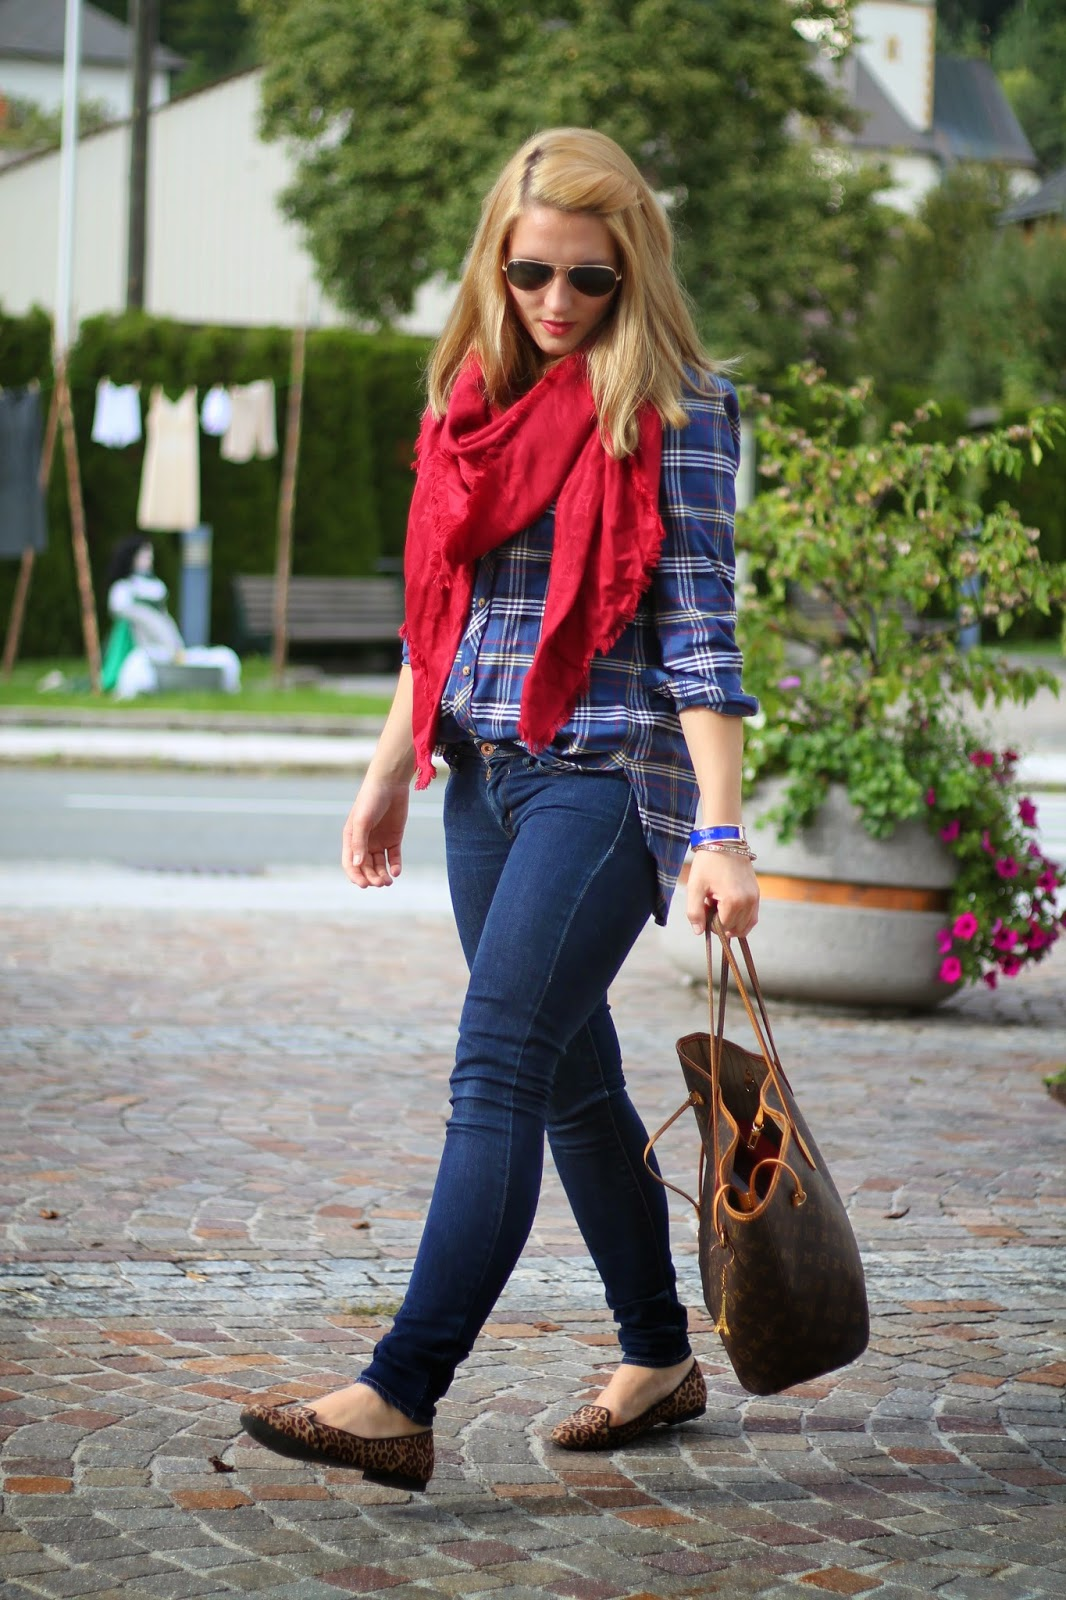 Fashionblogger Austria / Österreich / Deutsch / German / Kärnten / Carinthia / Klagenfurt / Köttmannsdorf / Spring Look / Classy / Edgy / Autumn / Autumn Style 2014 / Autumn Look / Fashionista Look / Louis Vuitton Red Scarf / Louis Vuitton neverfull Monogram Canvas / Ray Ban Sunglasses Aviator Pilotenbrille / Jeans Levis / Leo Loafers Flats /